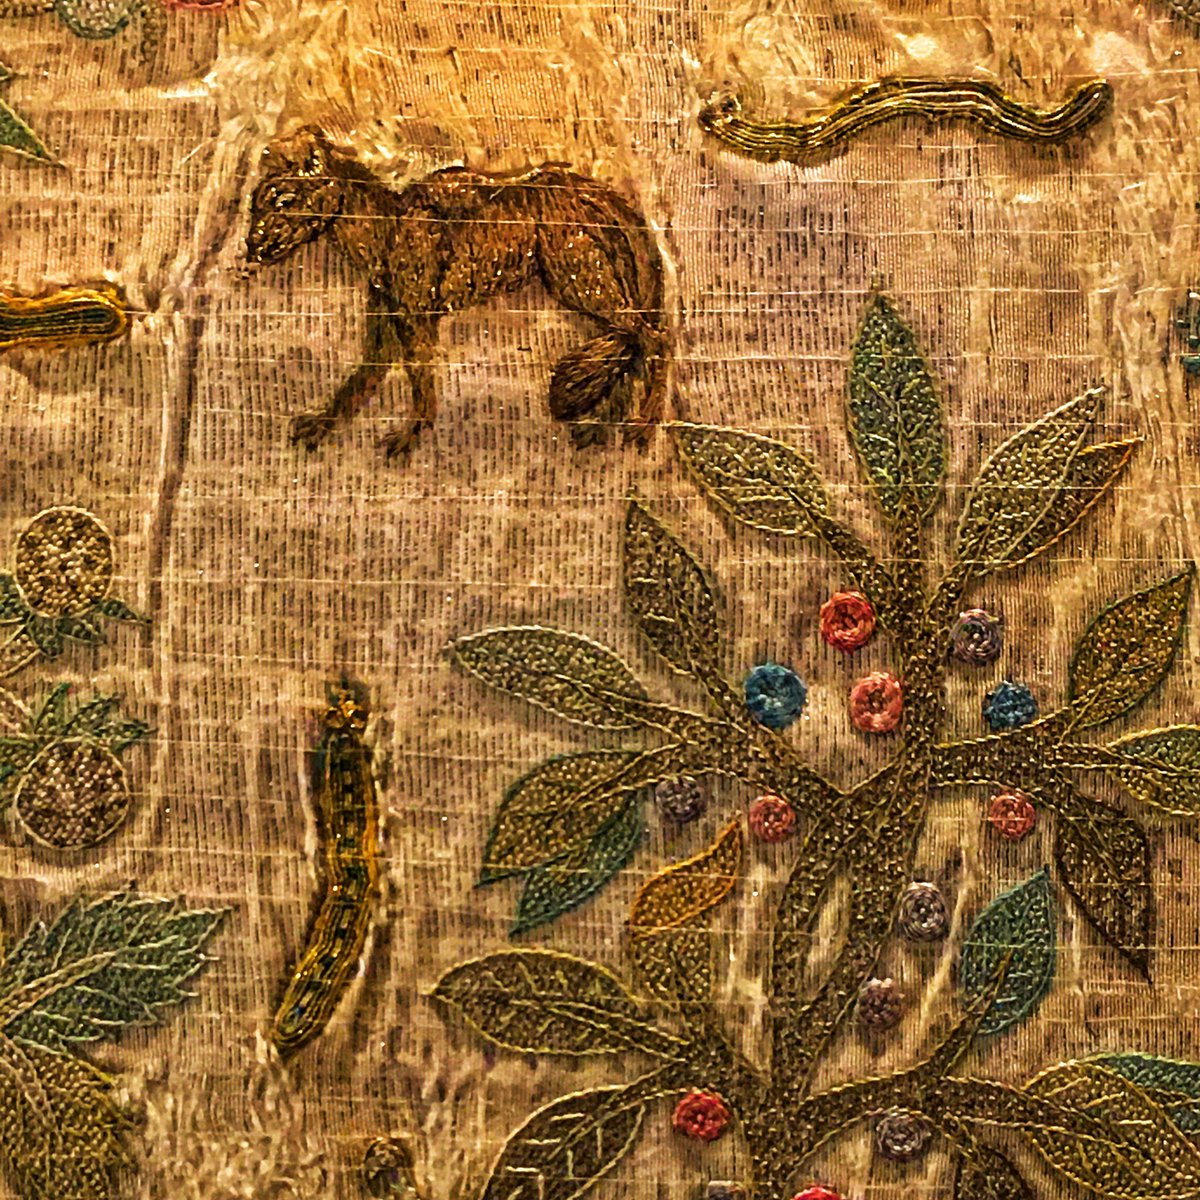 Hard to choose my favourite embroidered animal from #thelostdress of Elizabeth I currently on display at @HRP_palaces Hampton Court. Could it be this cunning little cat-like creature? Or the caterpillar?